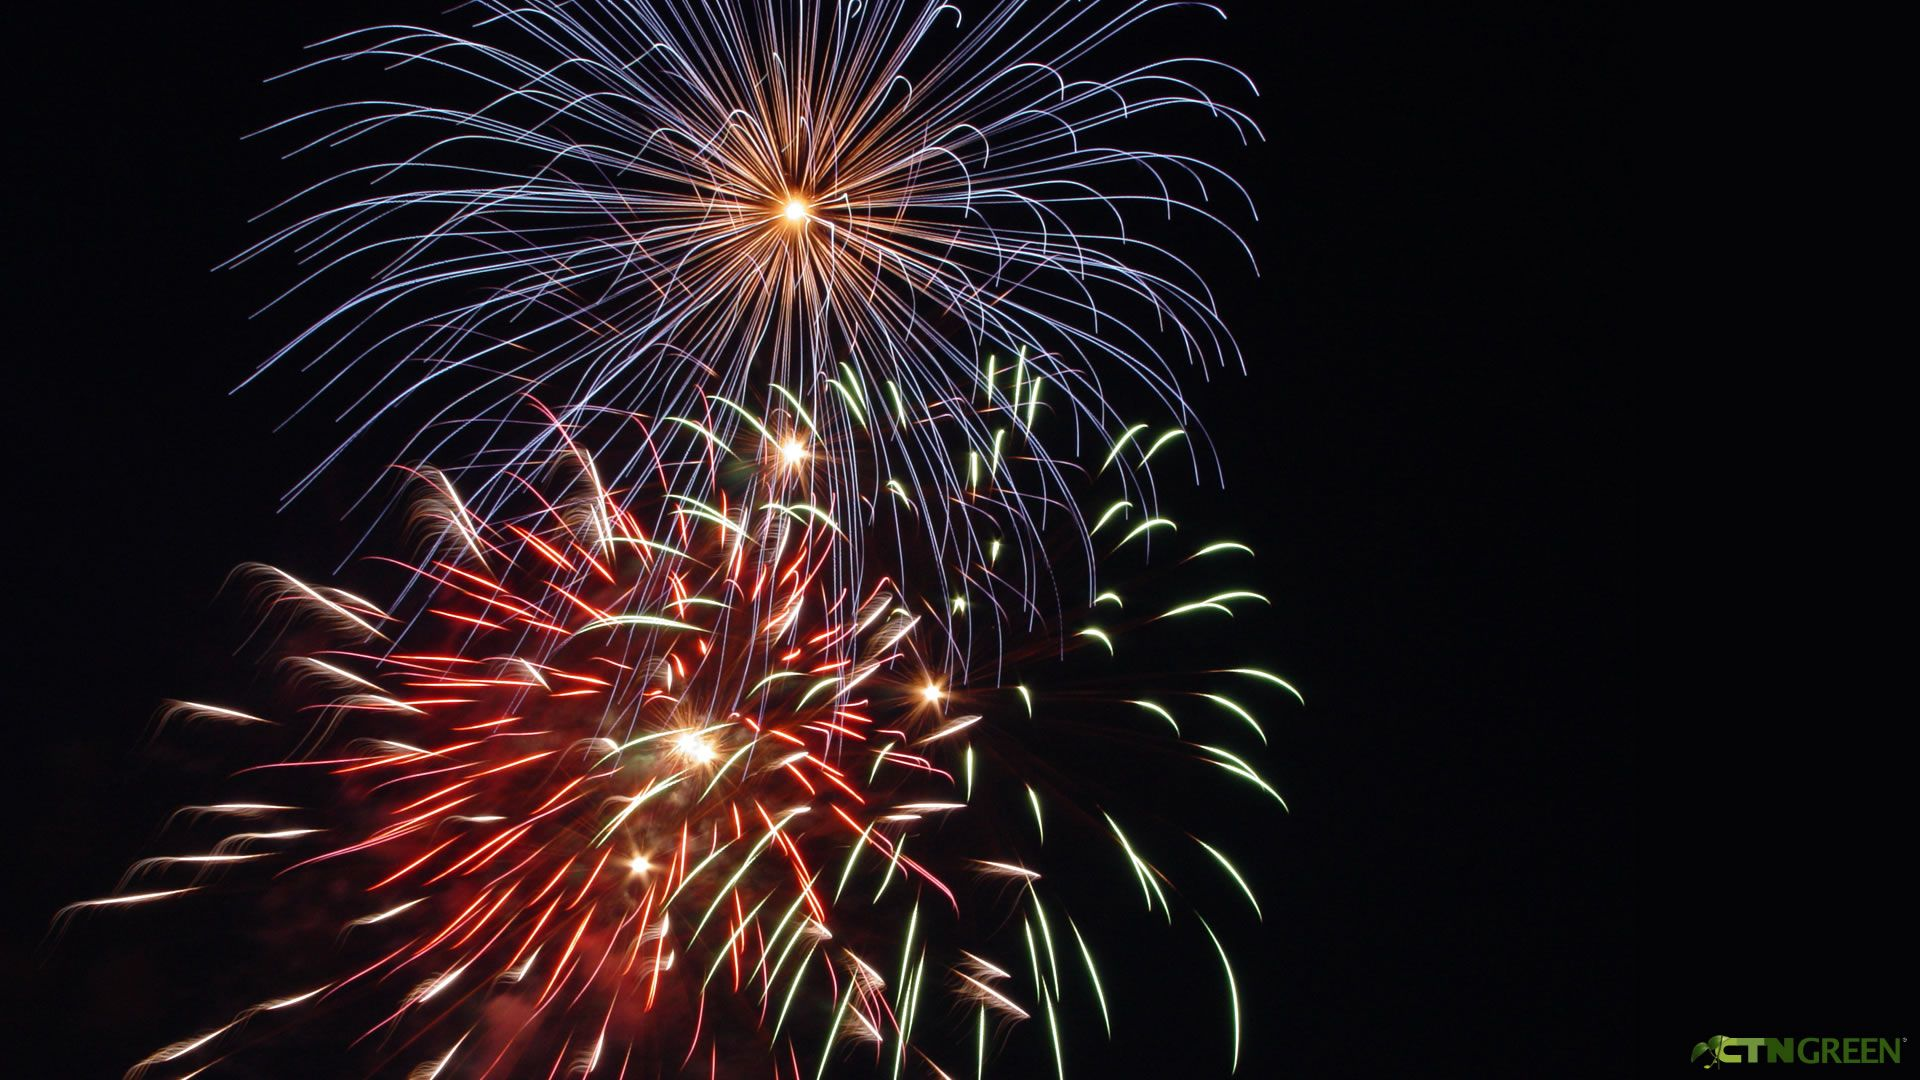 Fireworks Wallpaper Free: Color, Color And More Color!